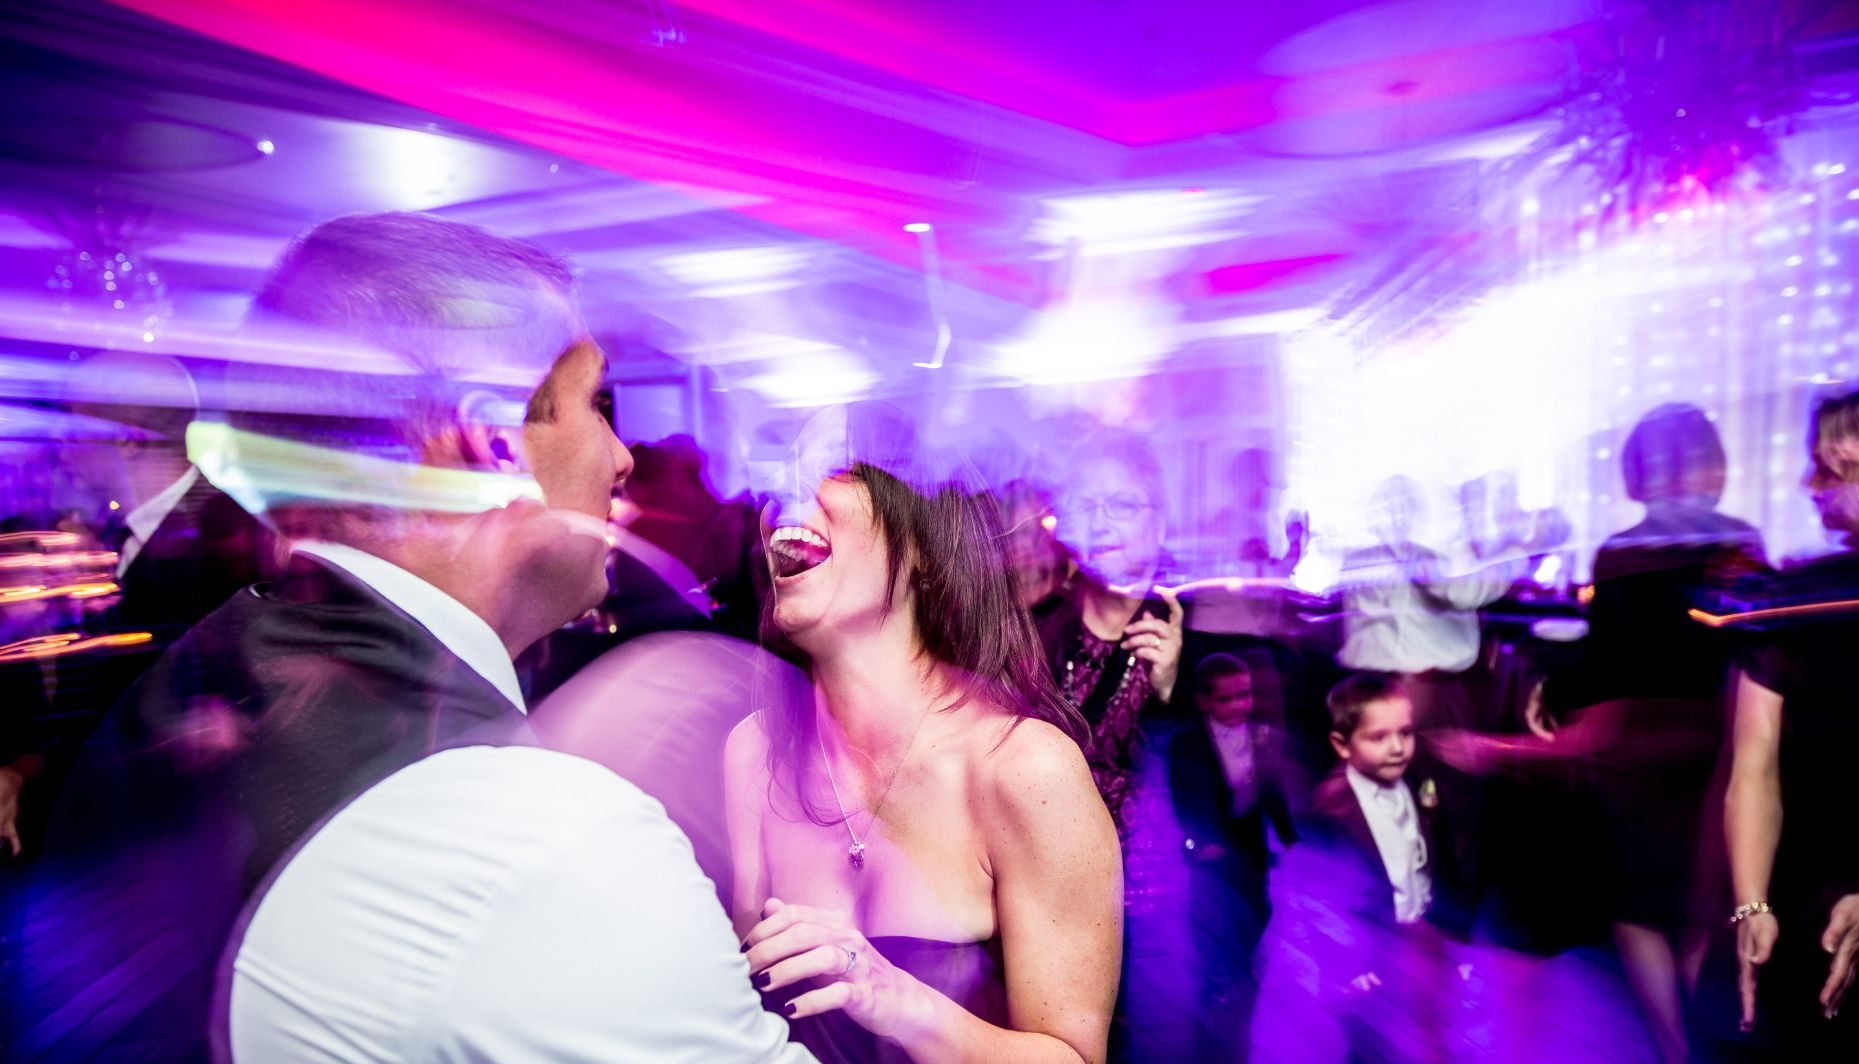 With our lighting packages, we can transform and electrify your reception and dance floor